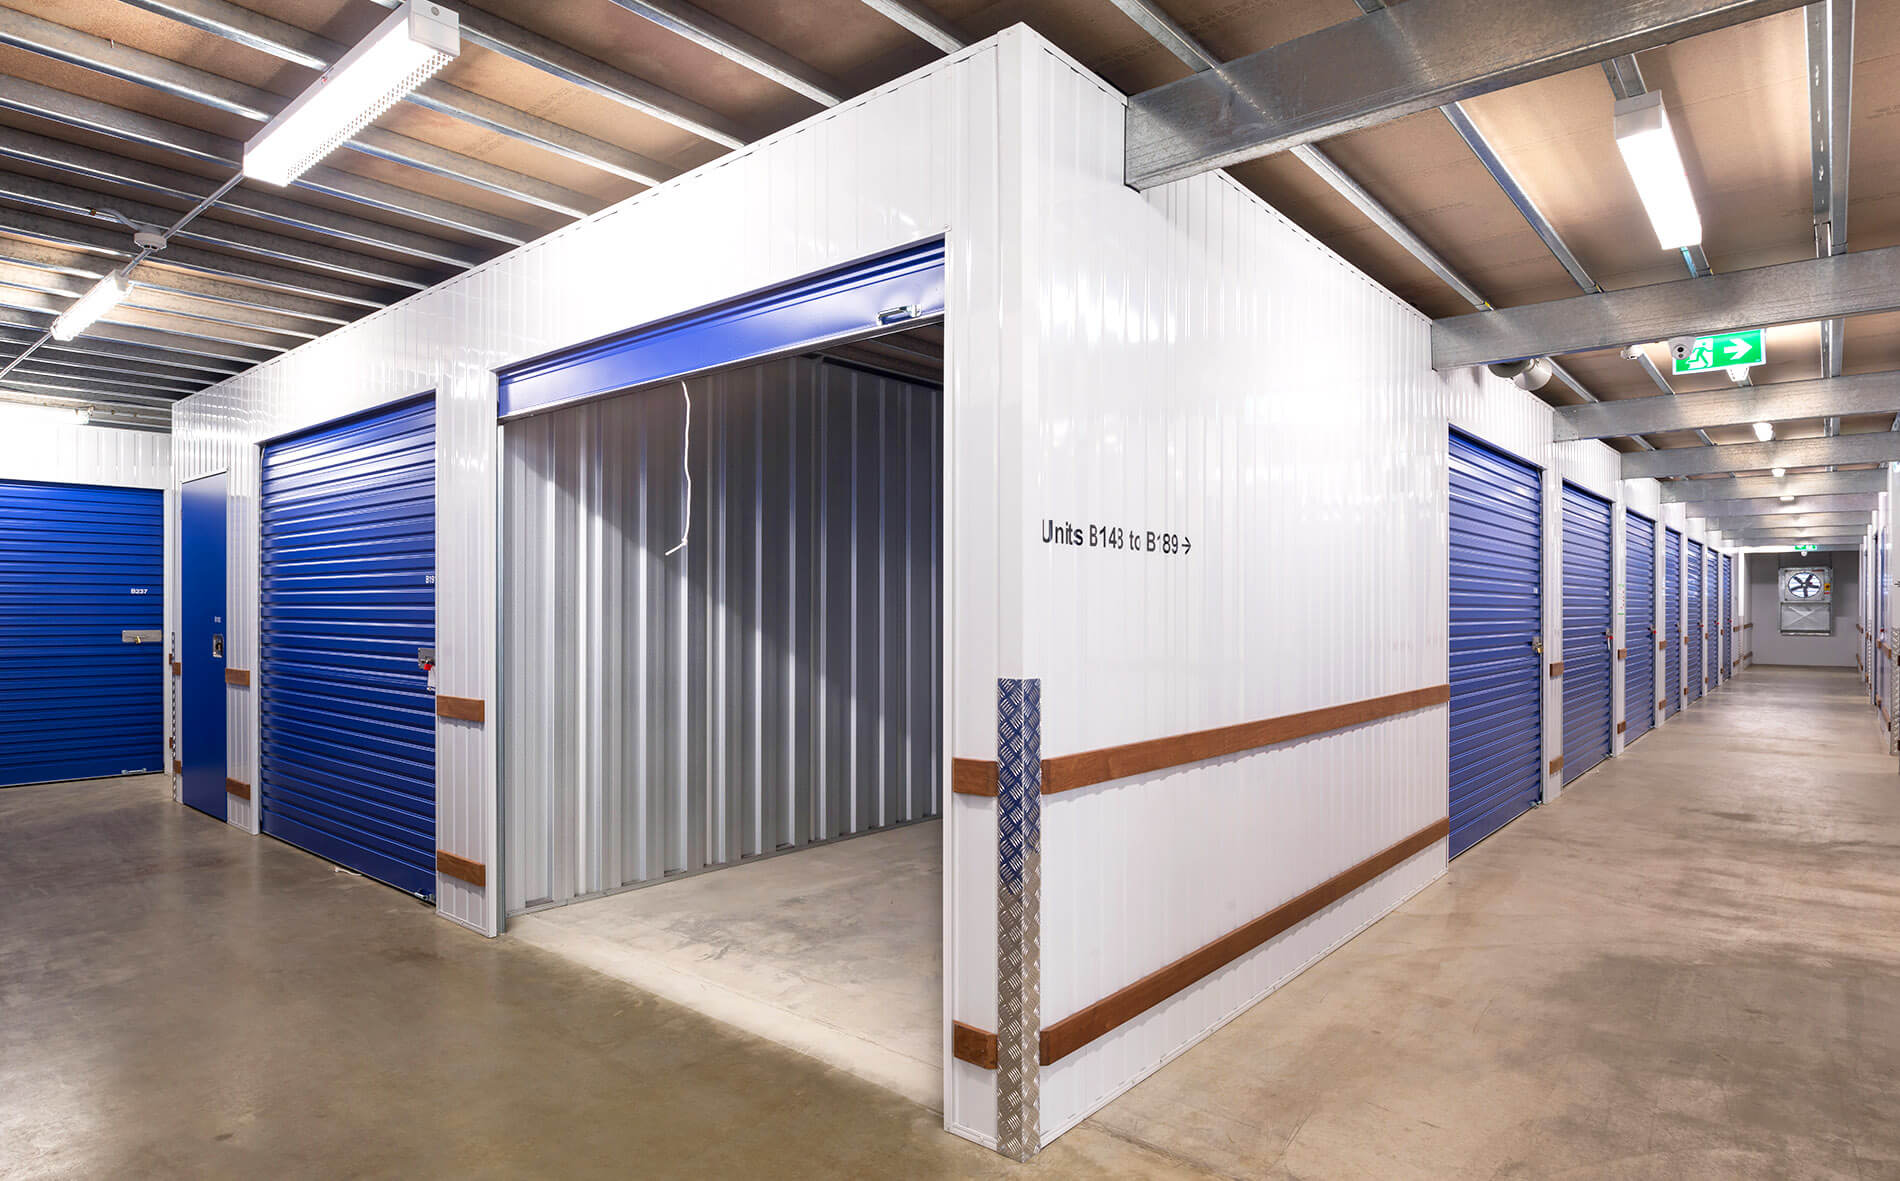 Steel Storage - Self Storage Construction